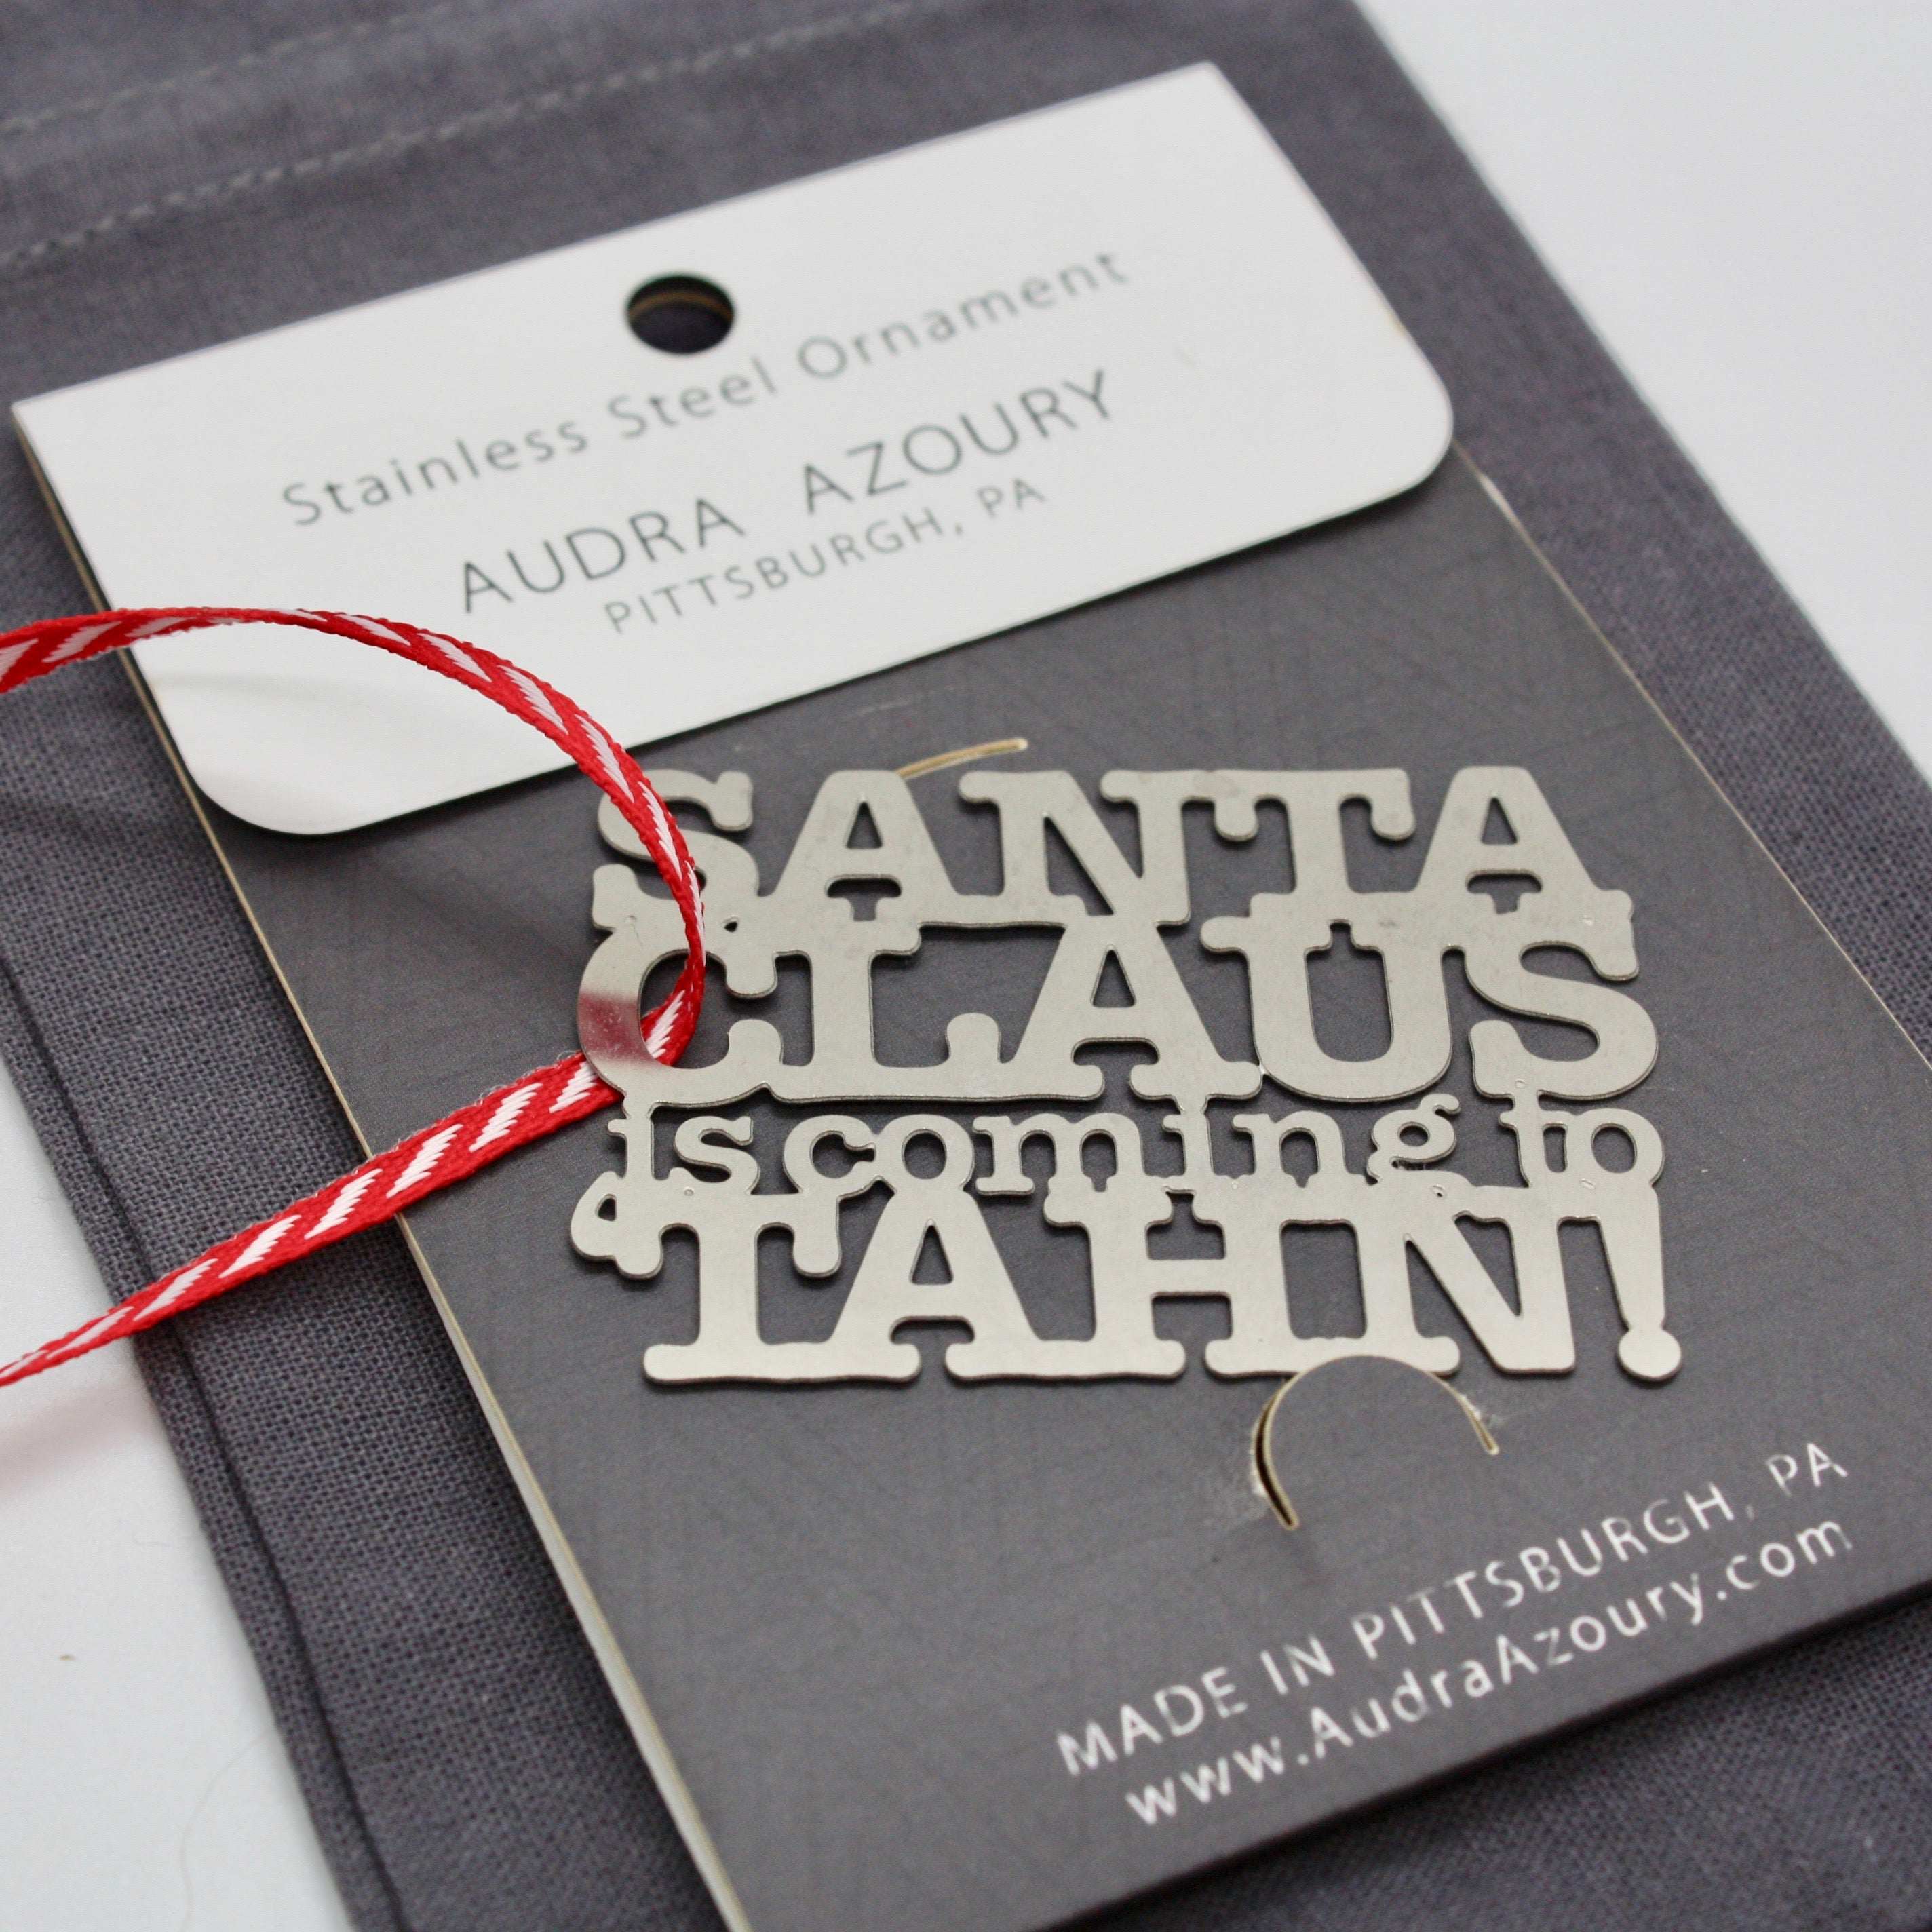 Santa Claus is coming to TAHN ornament by Audra Azoury